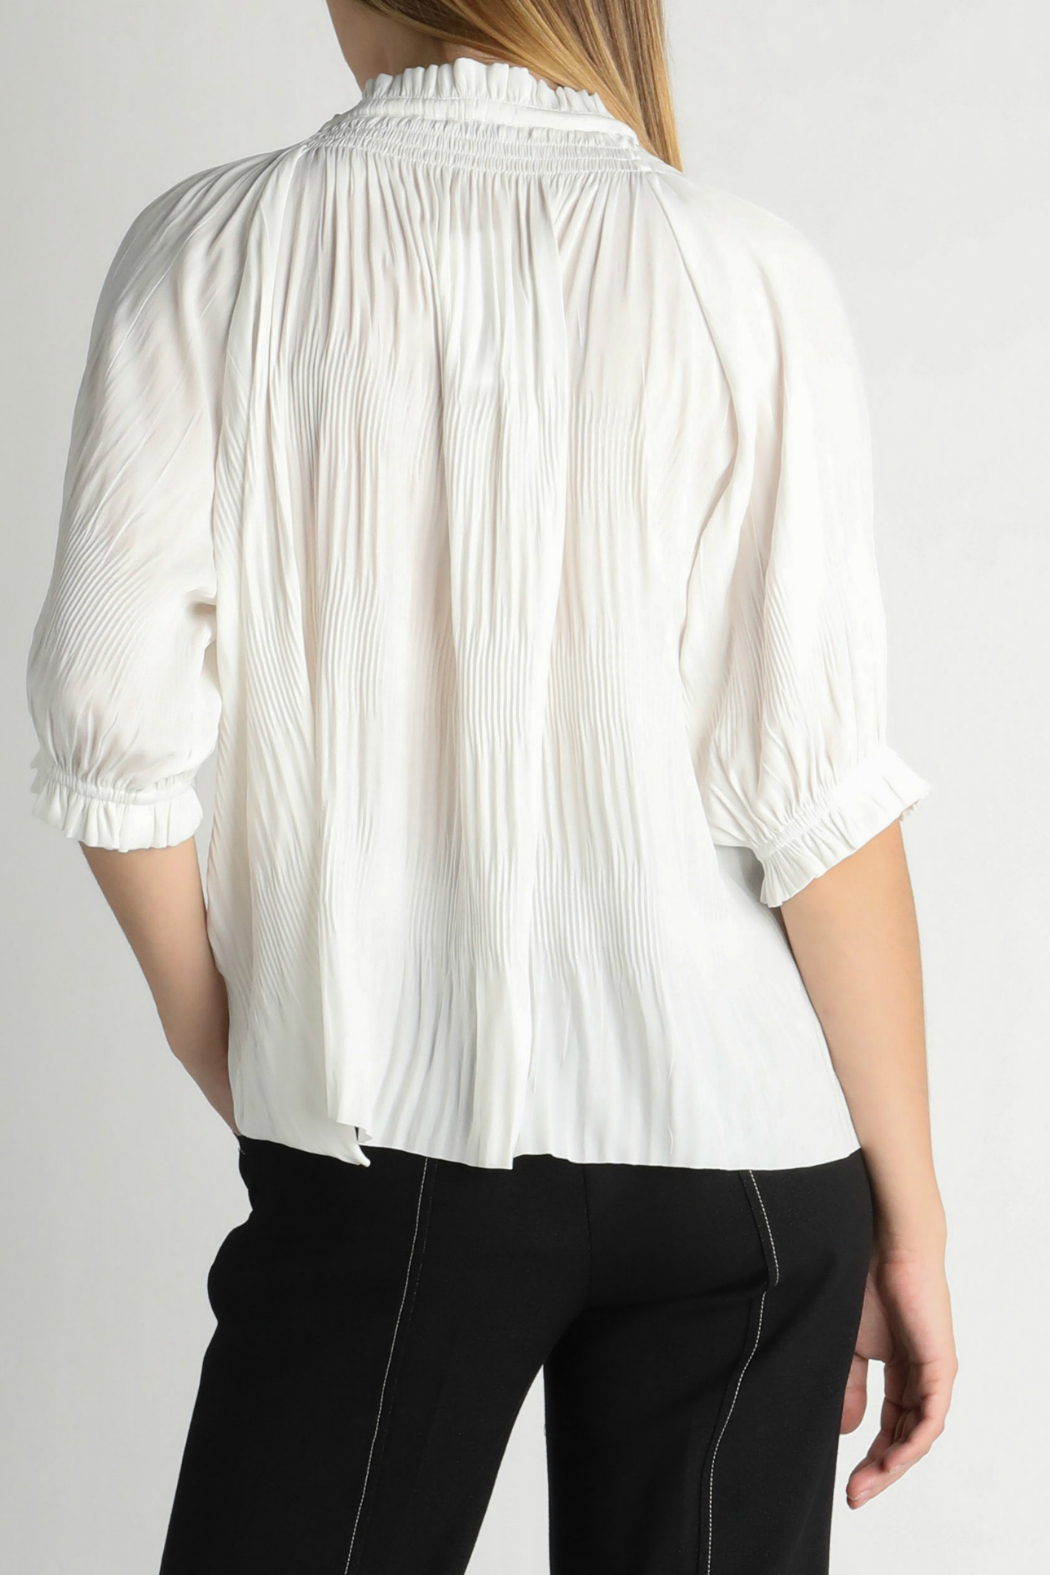 Current Air Boho tie front top - Front Full Image